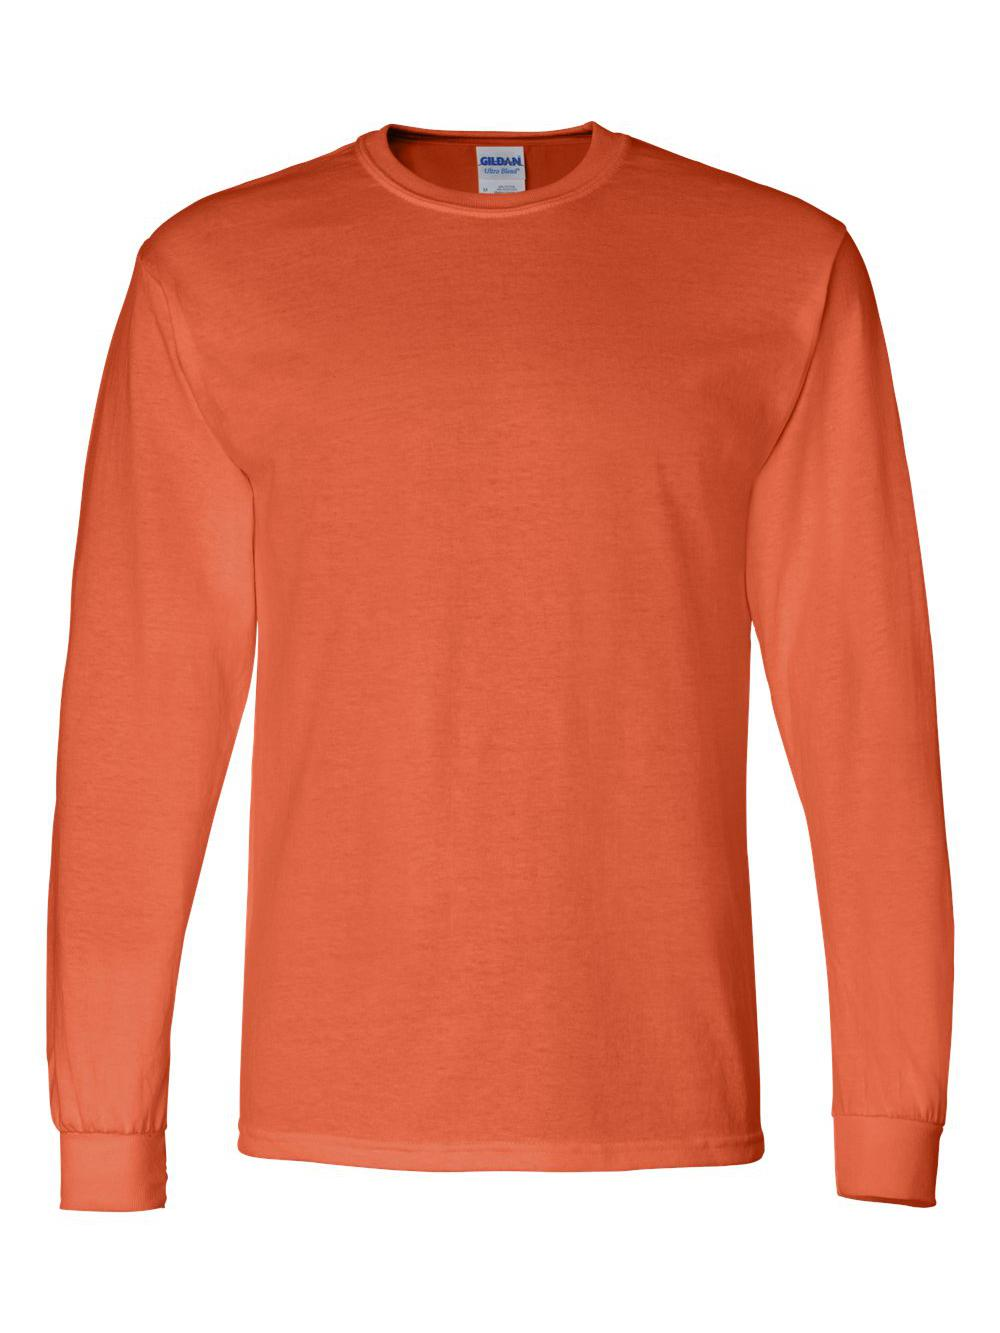 Gildan-DryBlend-50-50-Long-Sleeve-T-Shirt-8400 thumbnail 27